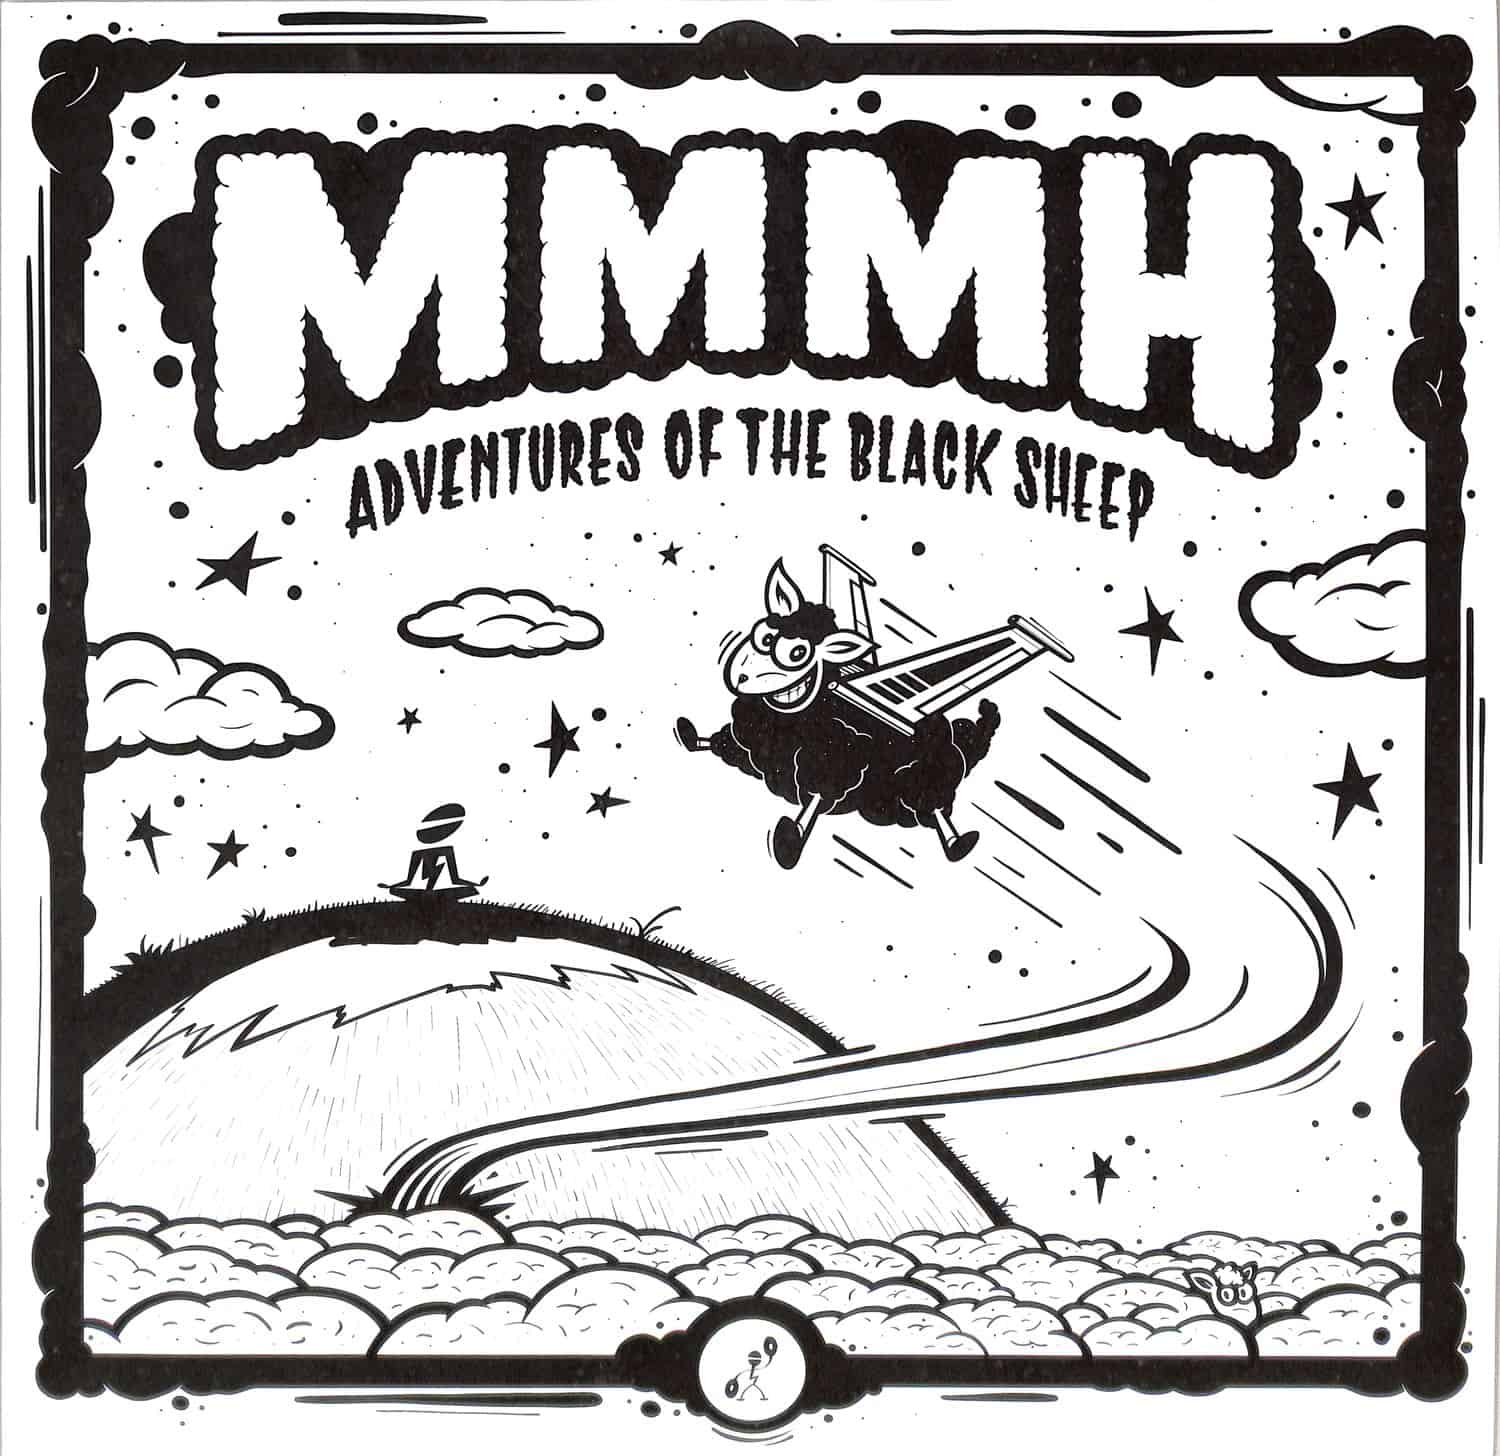 Mmmh - ADVENTURES OF THE BLACK SHEEP